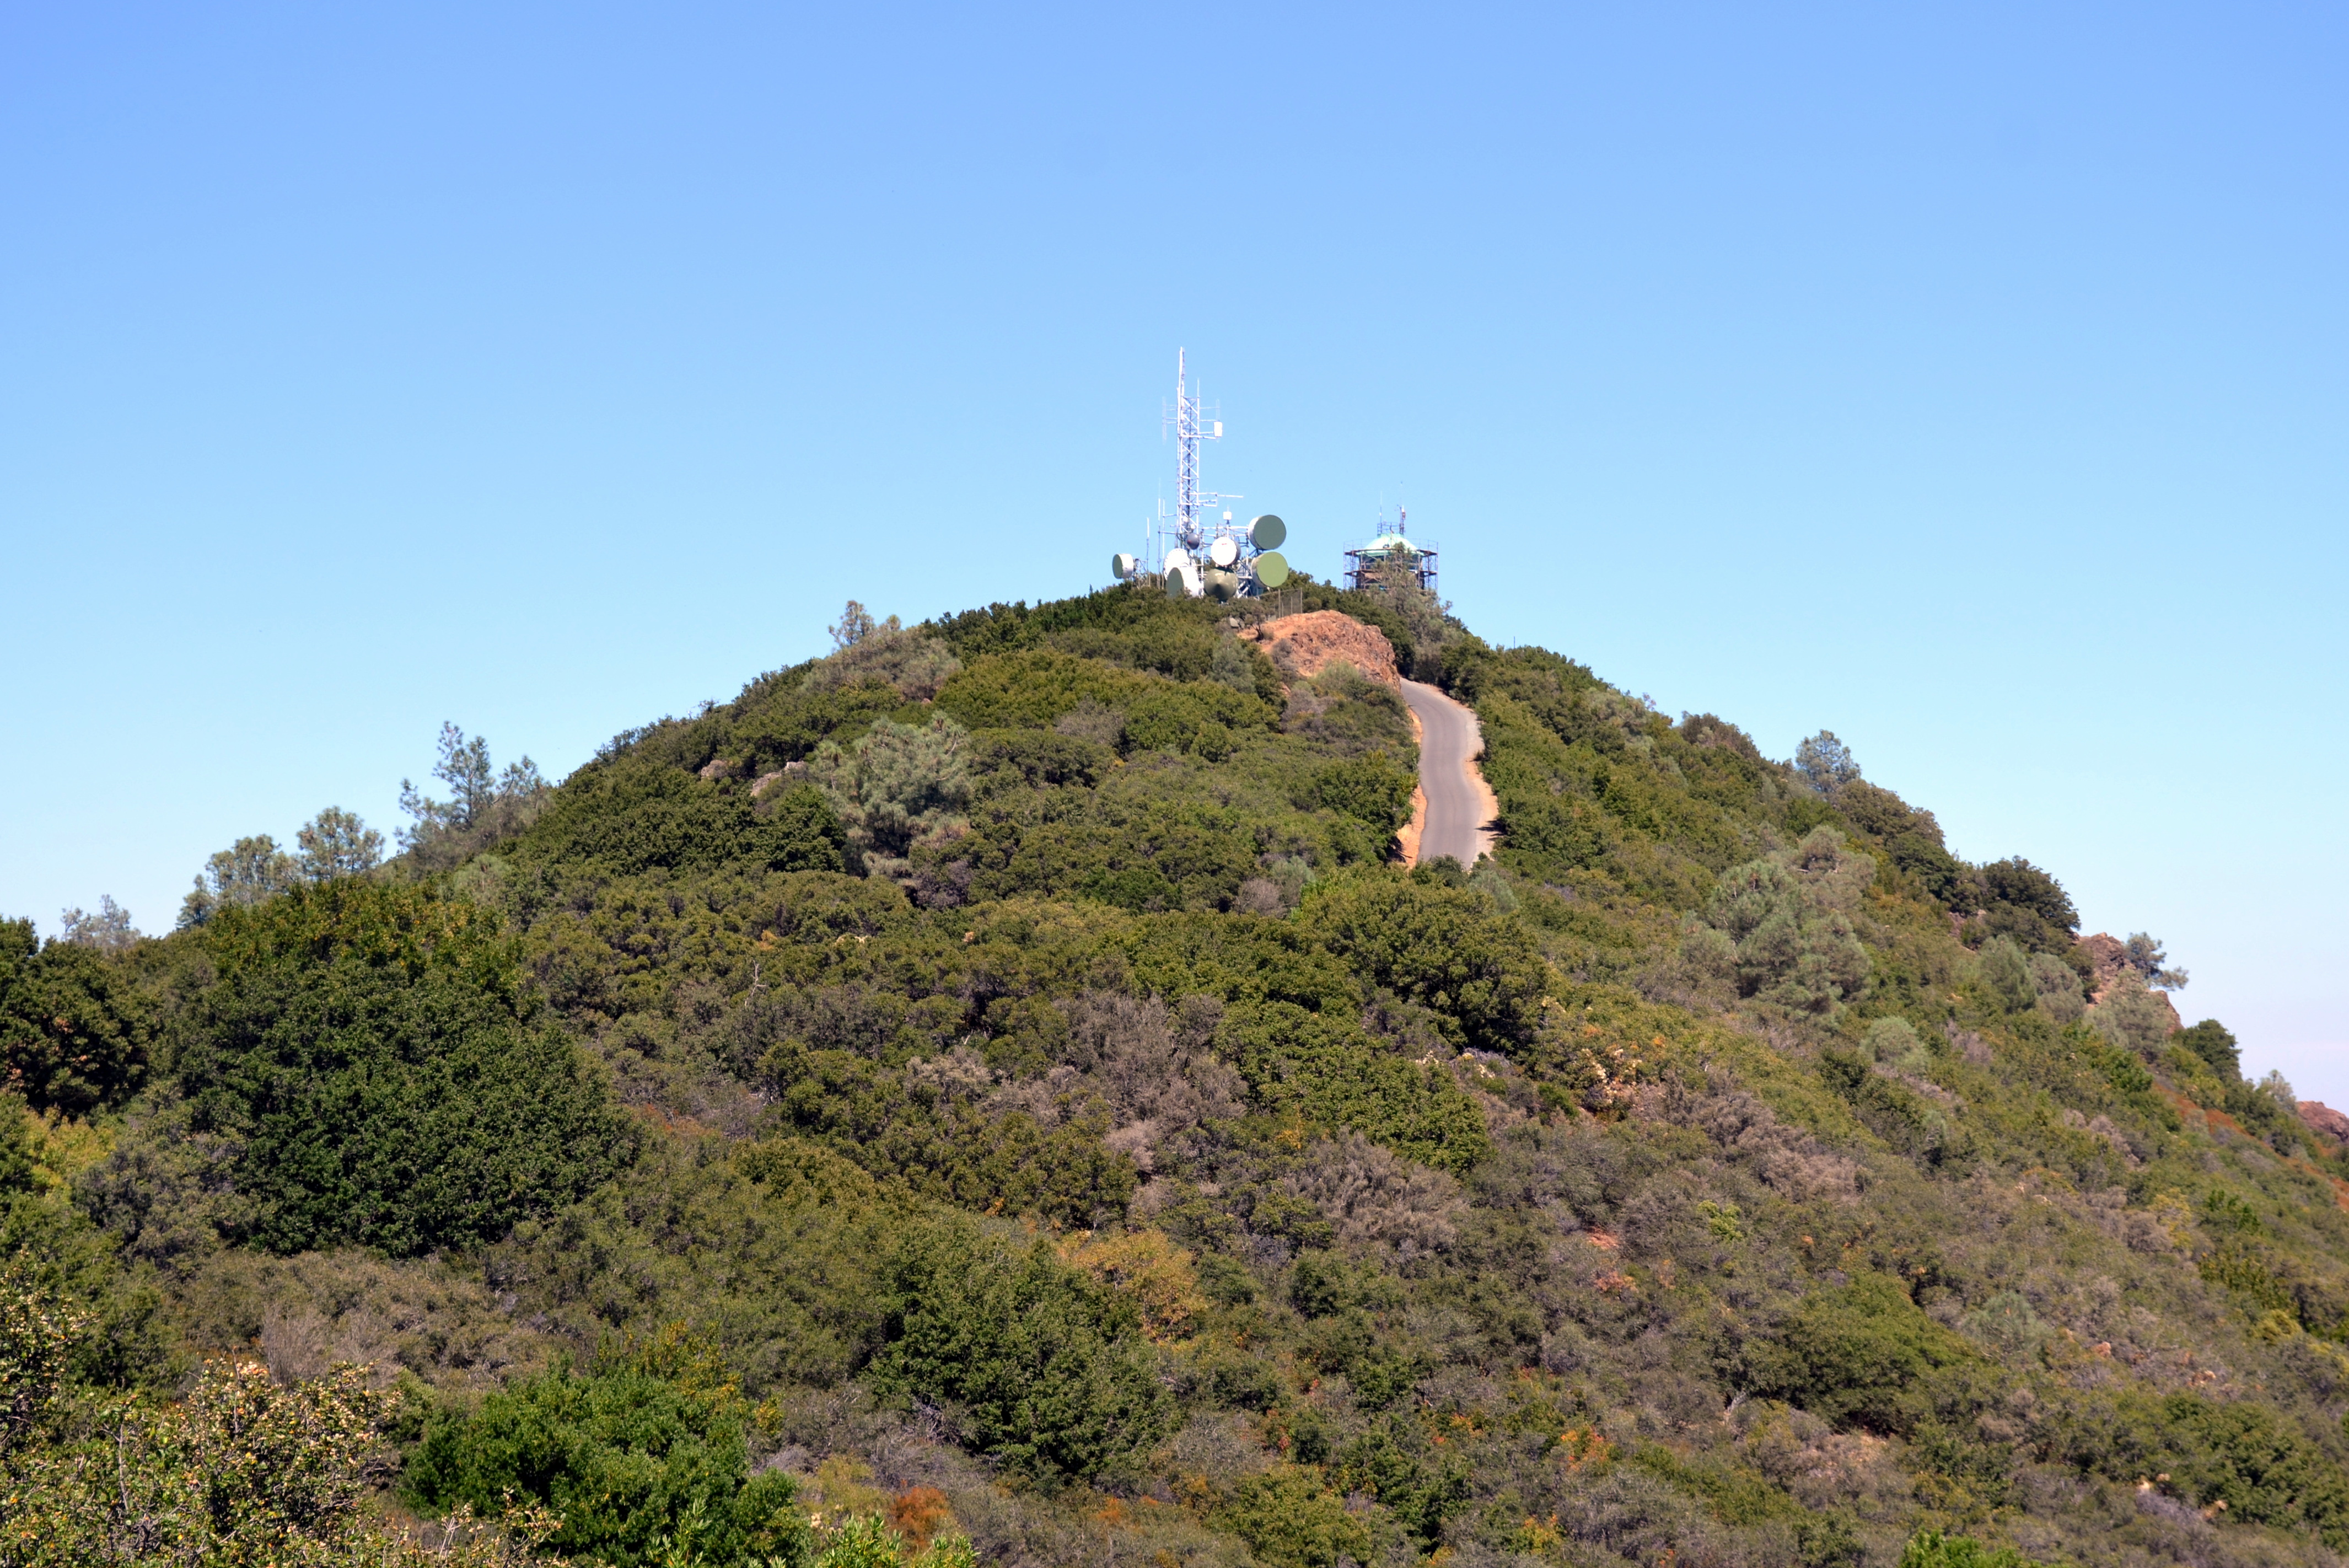 Advertisementmount diablo state park in blackhawk, ca is in the california beaches attractions, parks, and things to do category. Mount Diablo Wikiwand